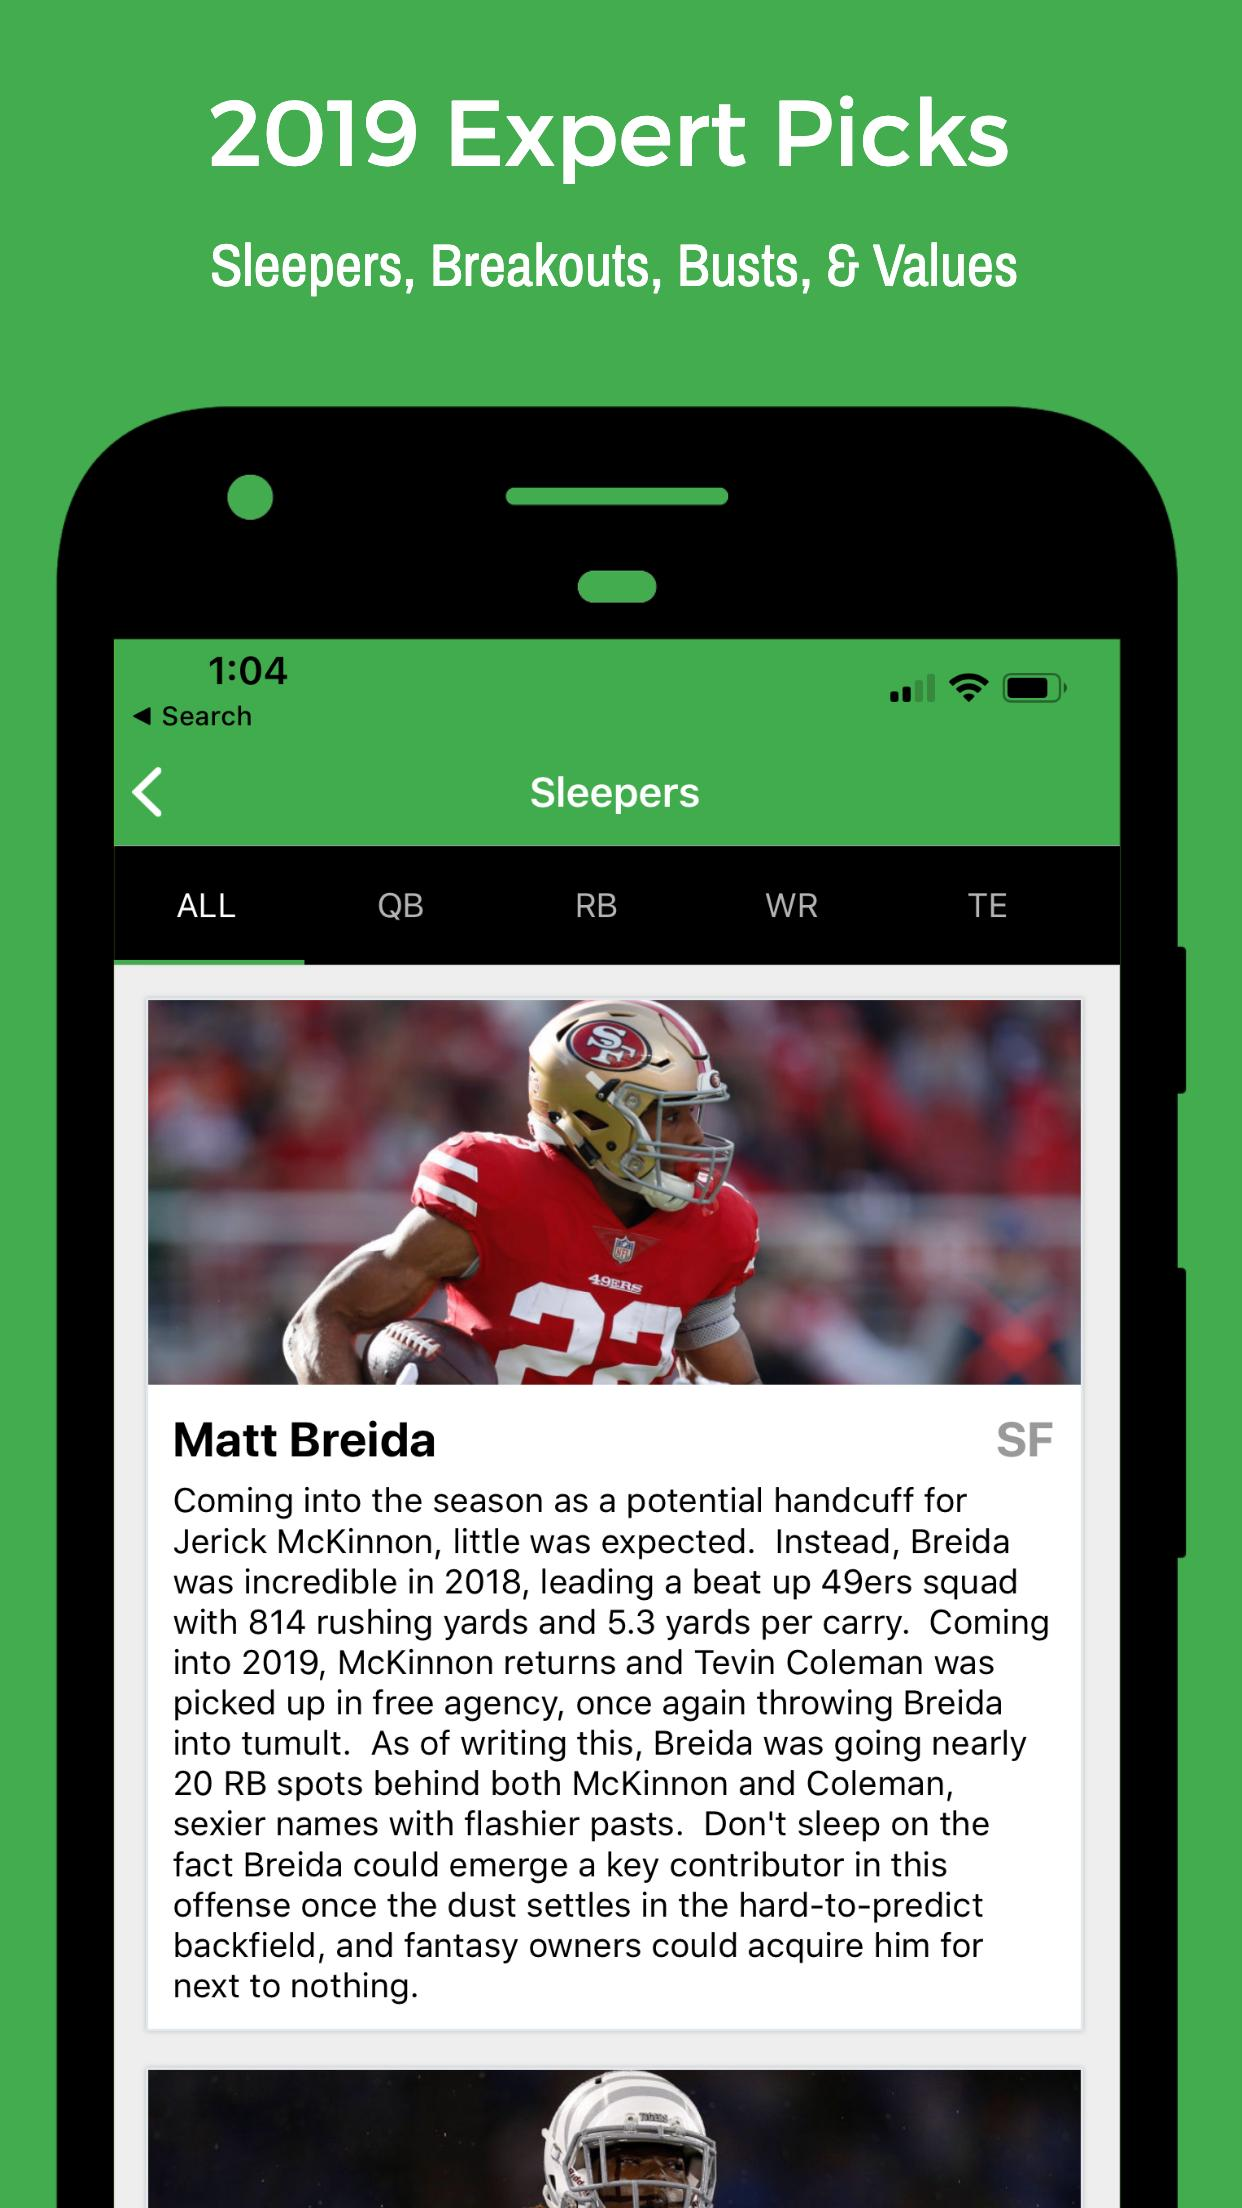 Fantasy Football Draft Kit 2019 - UDK for Android - APK Download